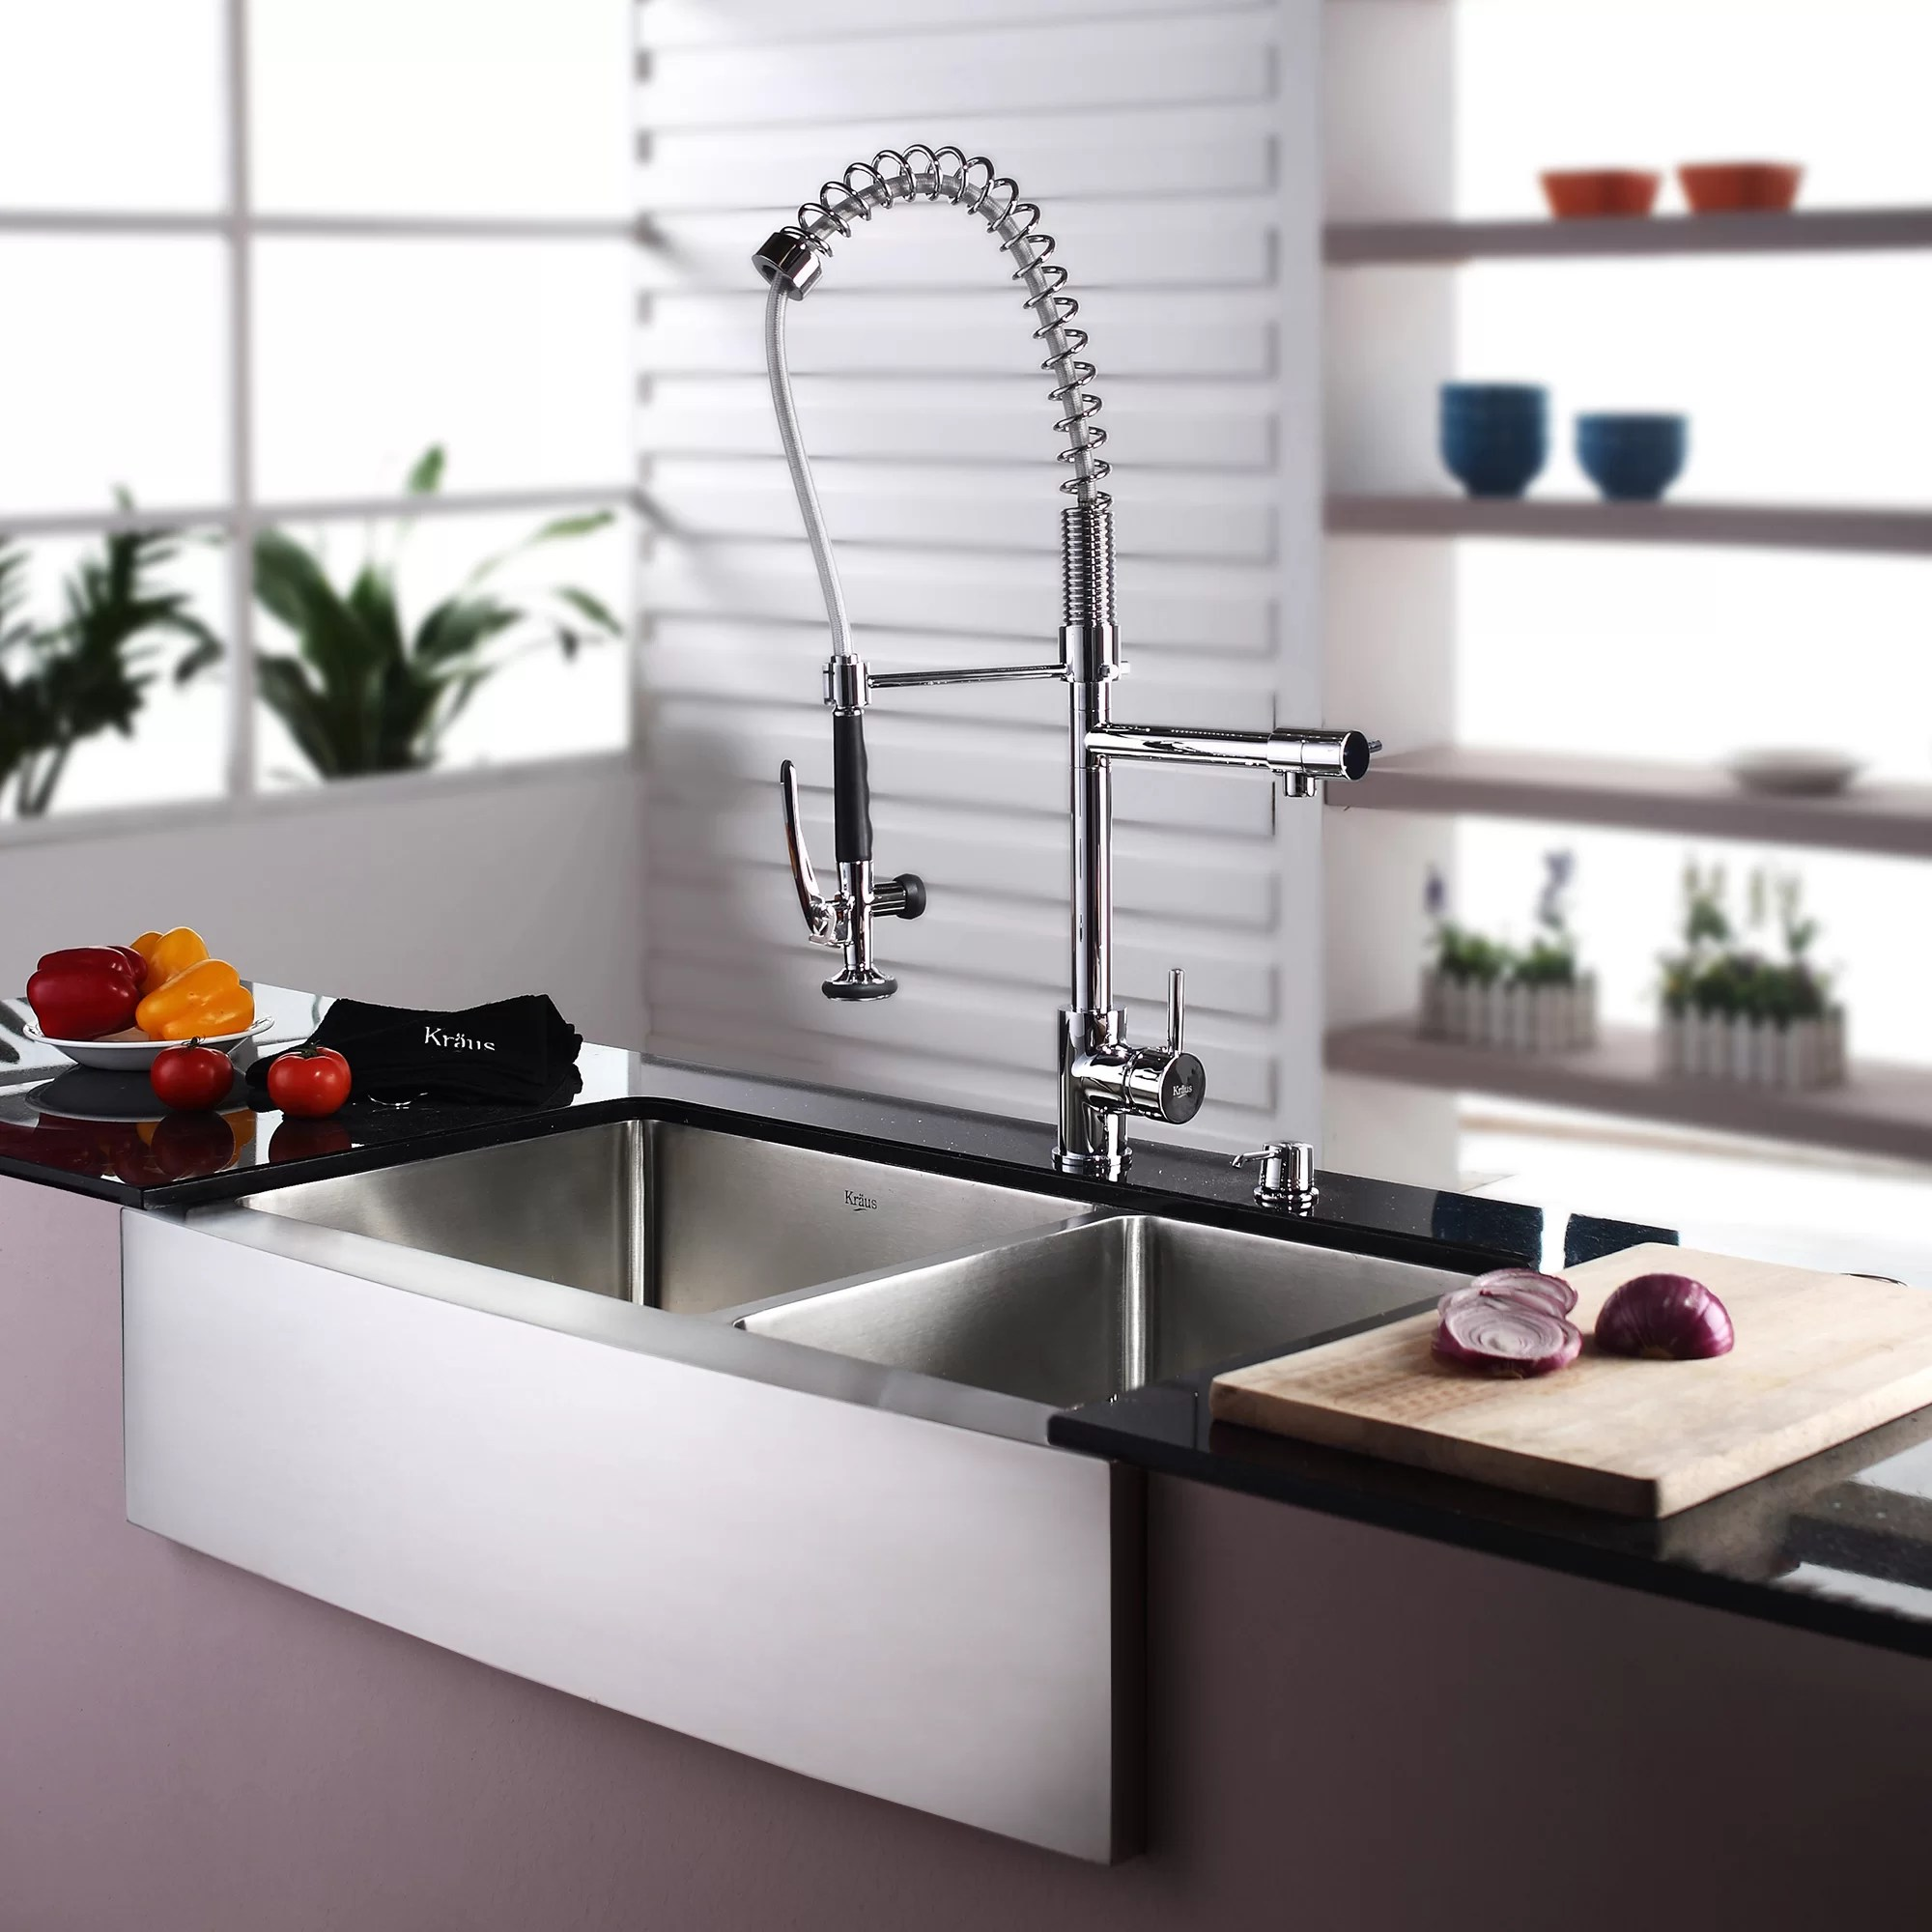 Kraus Stainless Steel 35.9 x 20.75 8 Piece Double Basin Farmhouse Kitchen Sink Set with Kitchen Faucet and Soap Dispenser